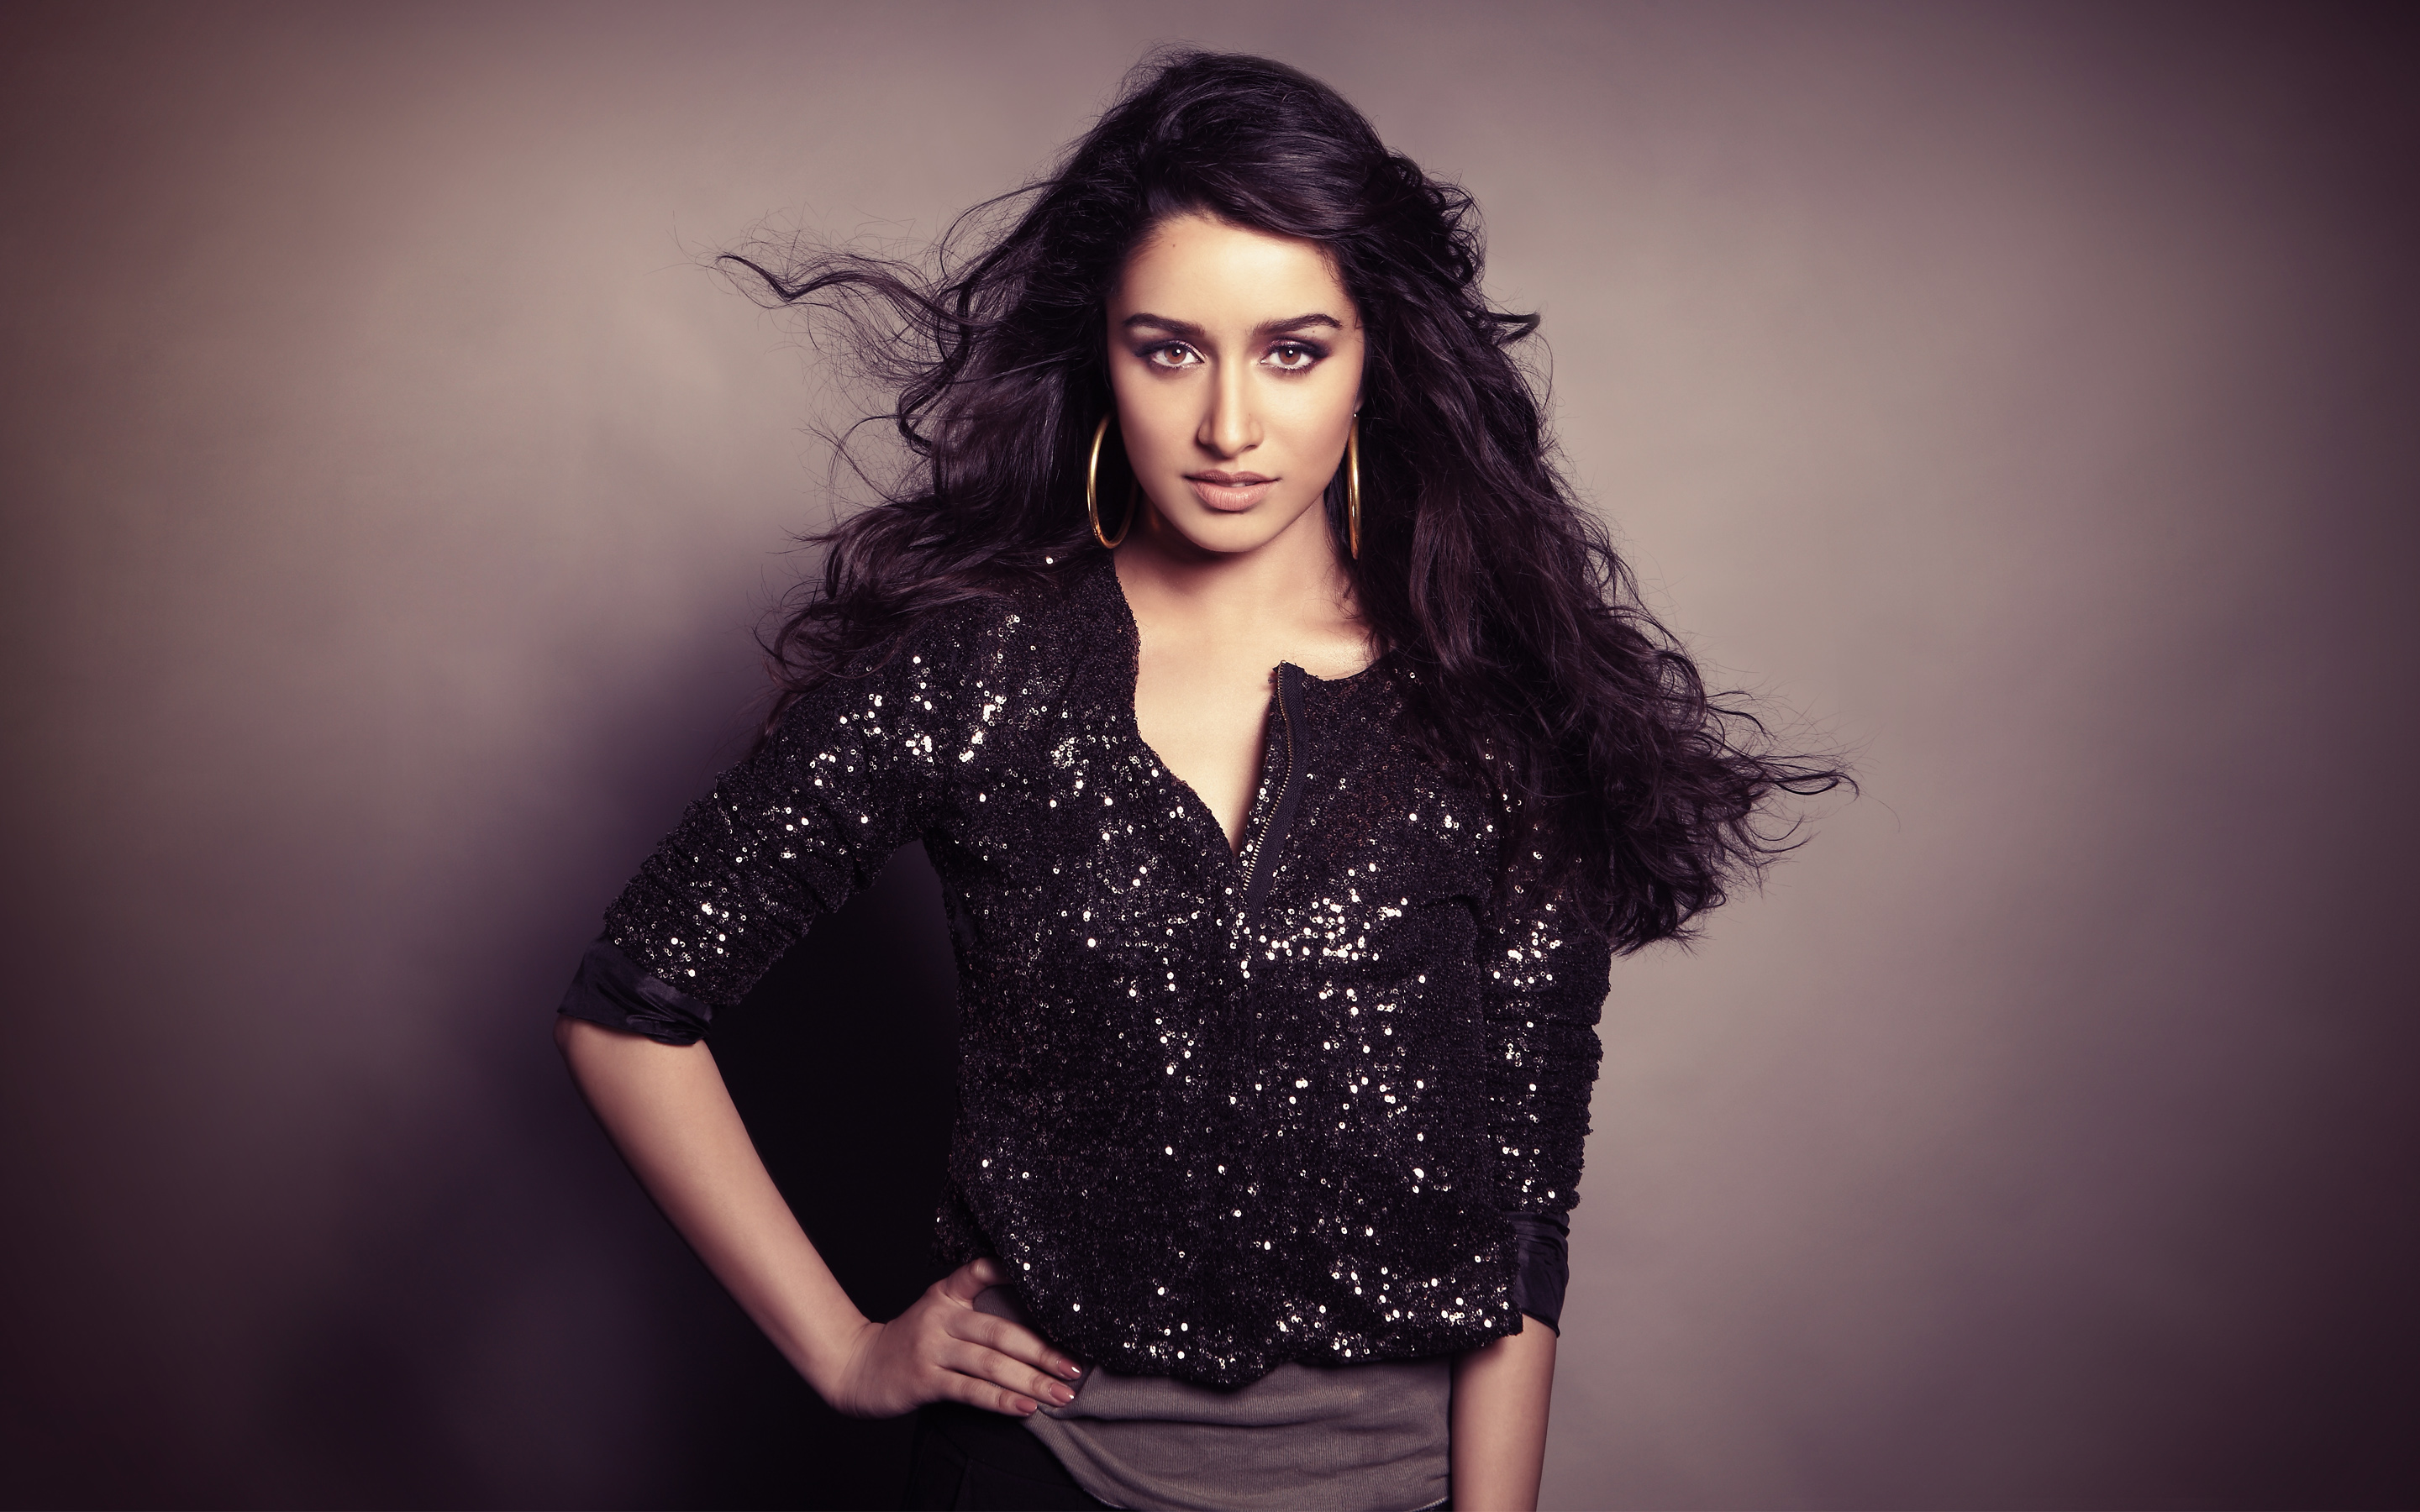 shraddha kapoor full hd wallpaper and background image | 2880x1800